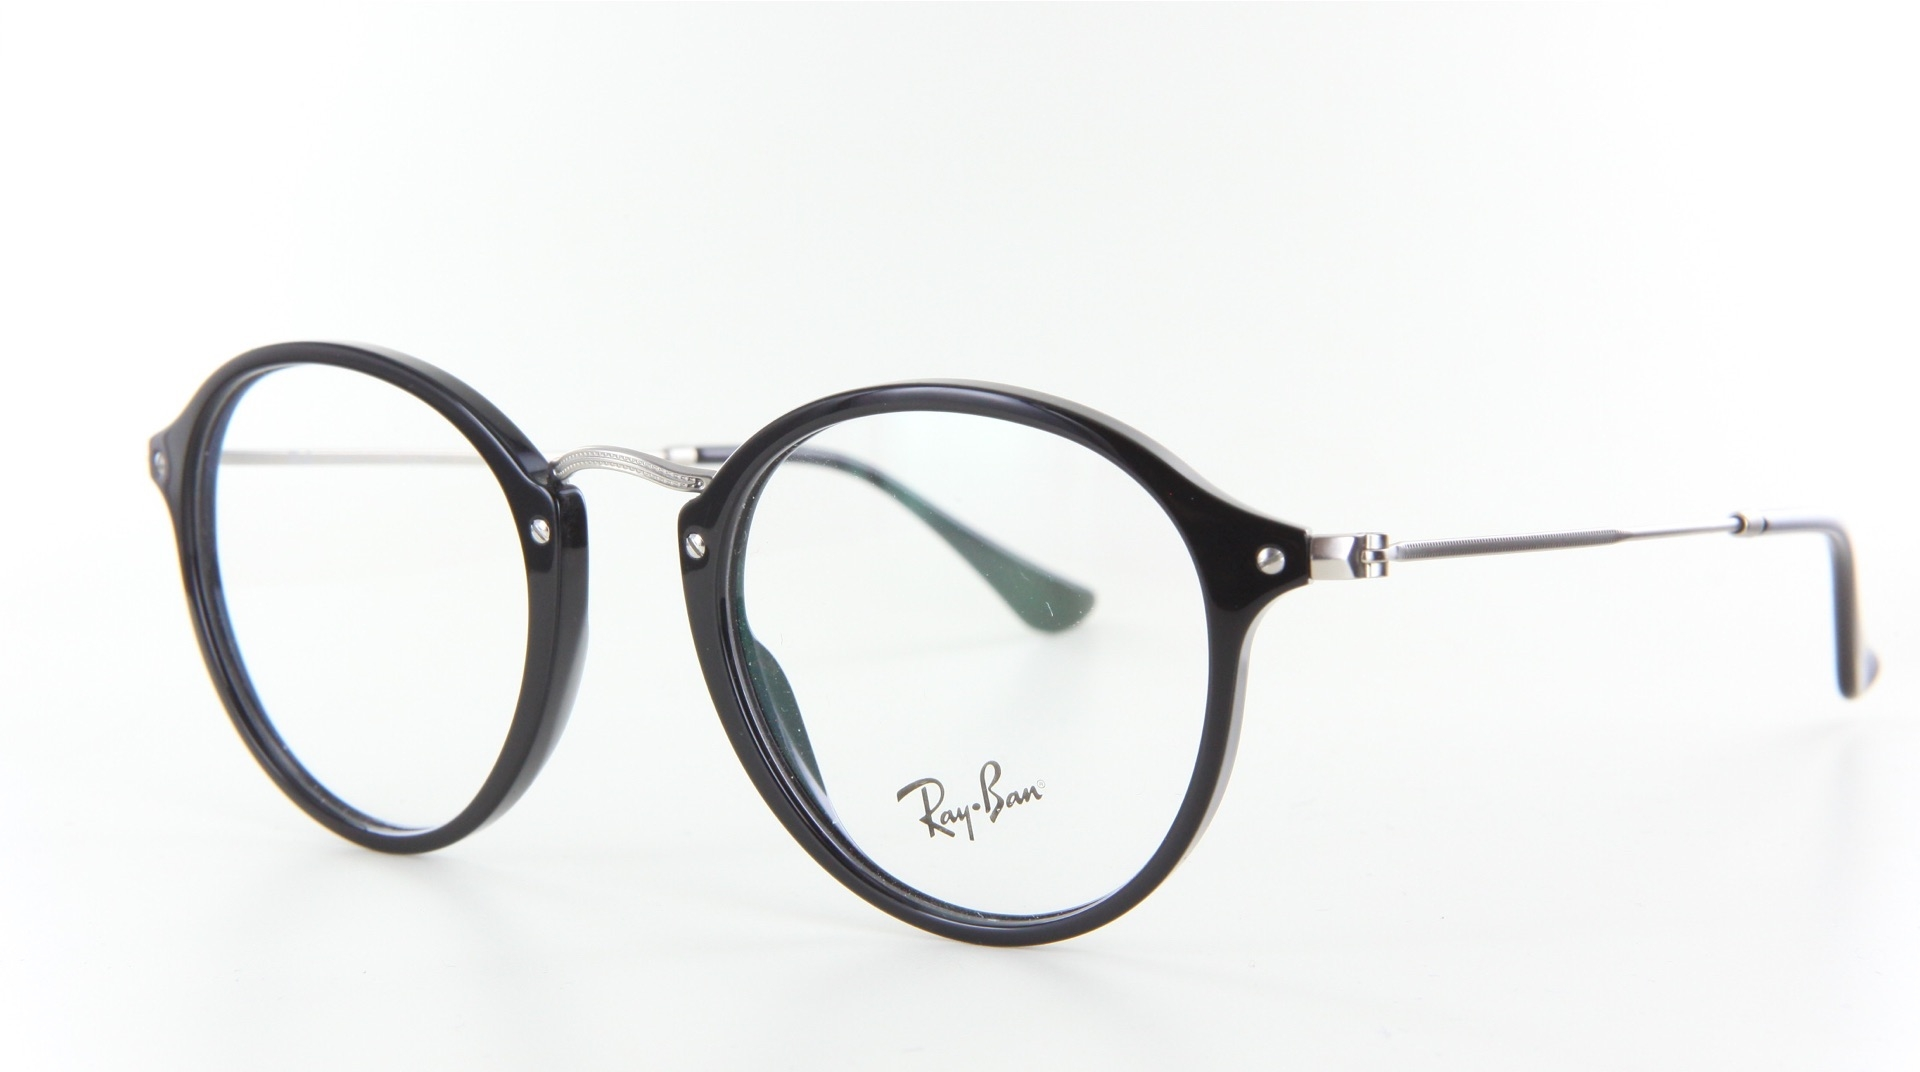 Ray-Ban - ref: 73634